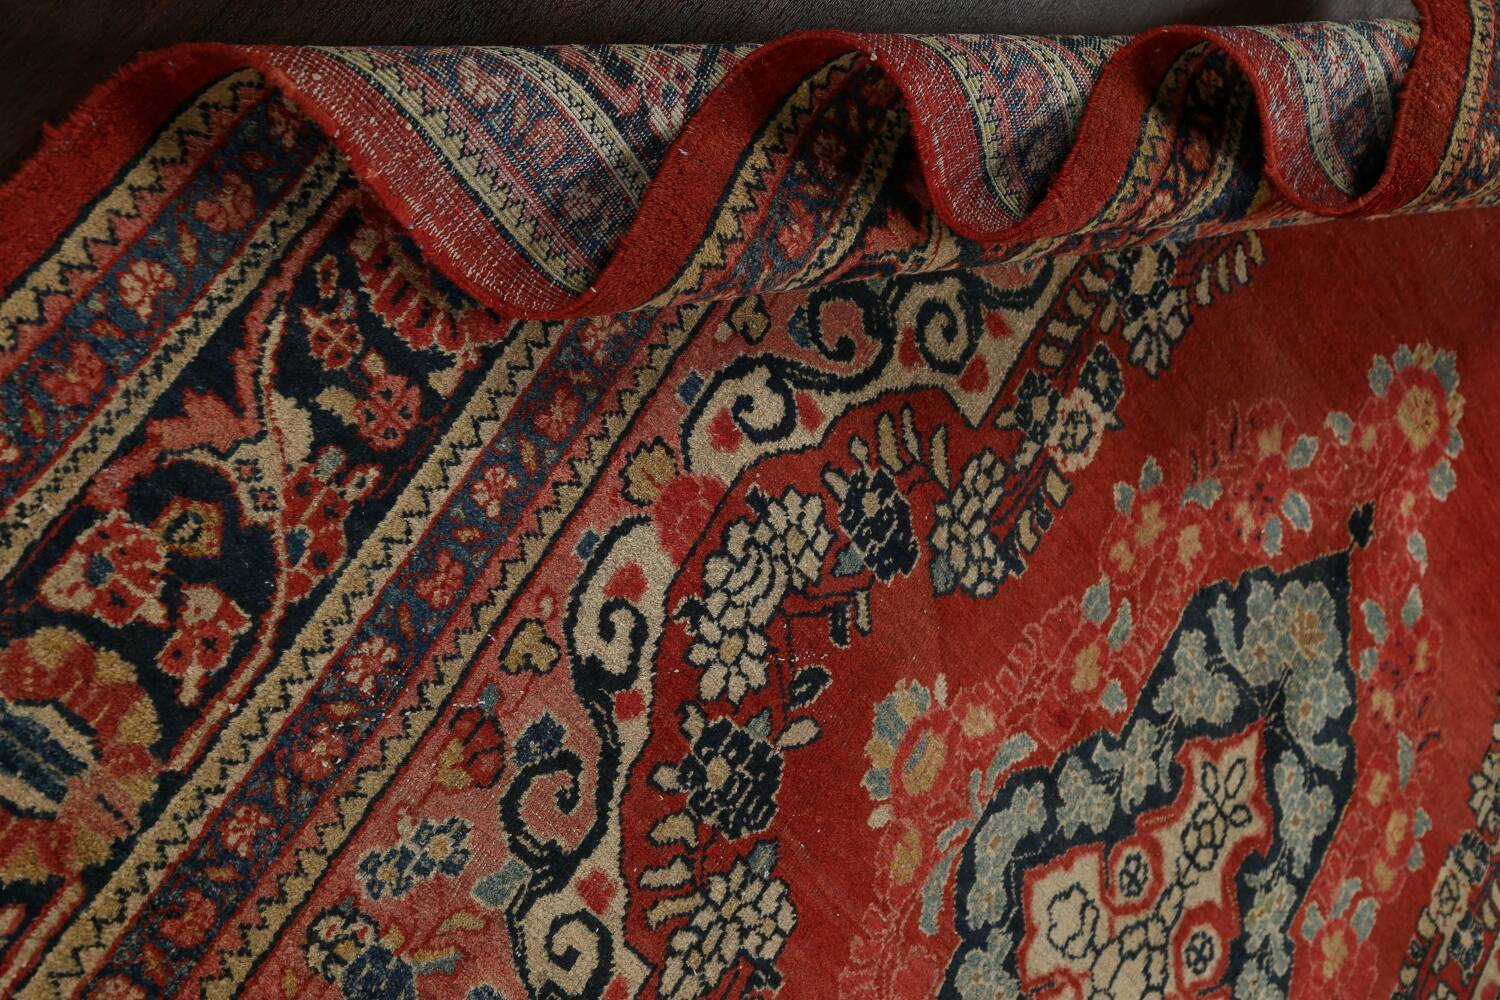 Antique Floral Mahal Persian Area Rug 8x11 image 19